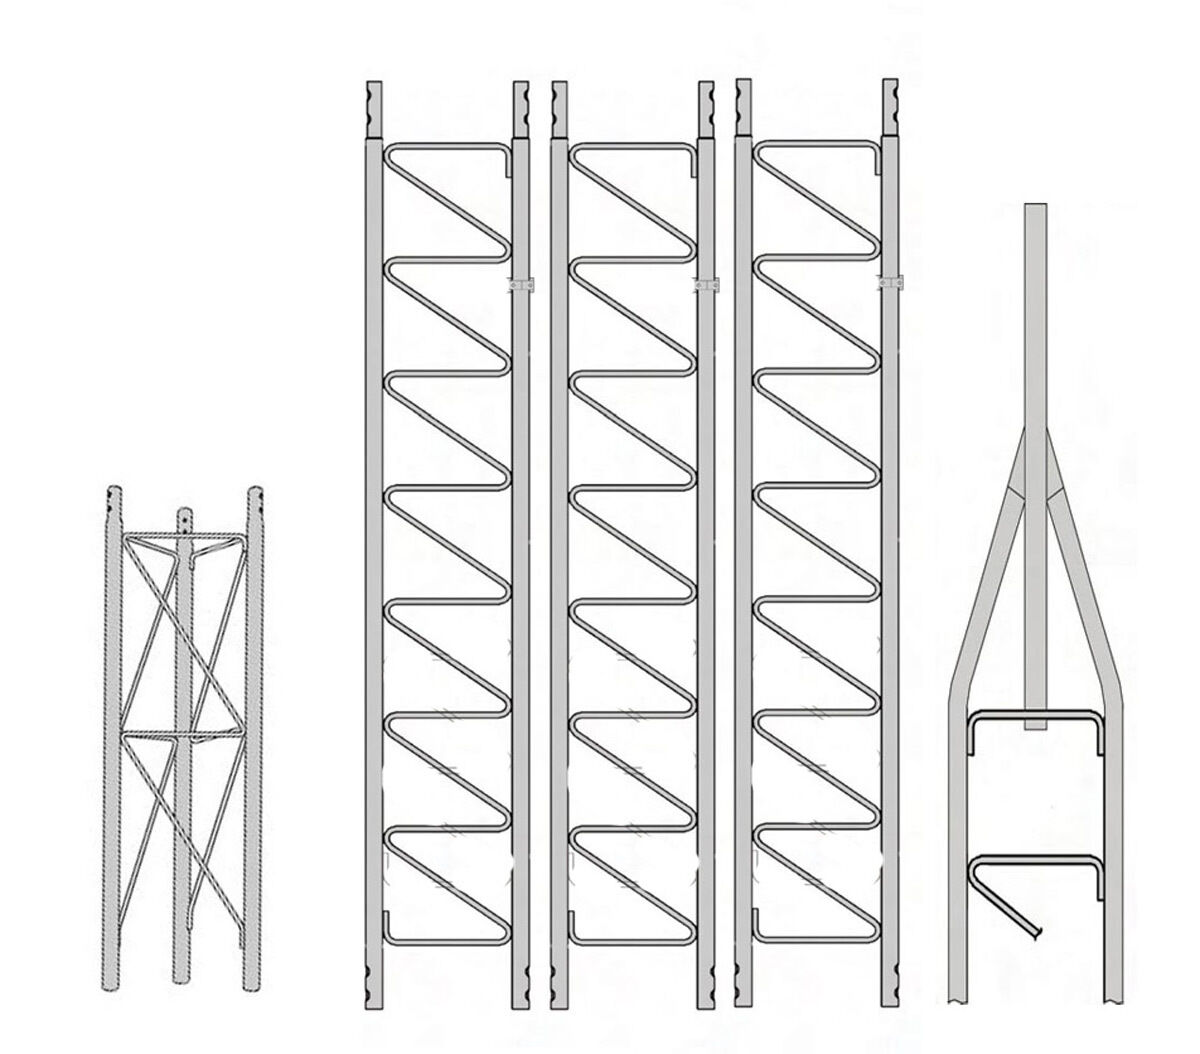 ROHN 25SS040 25G Series 40' Self Supporting Tower Kit . Buy it now for 830.00